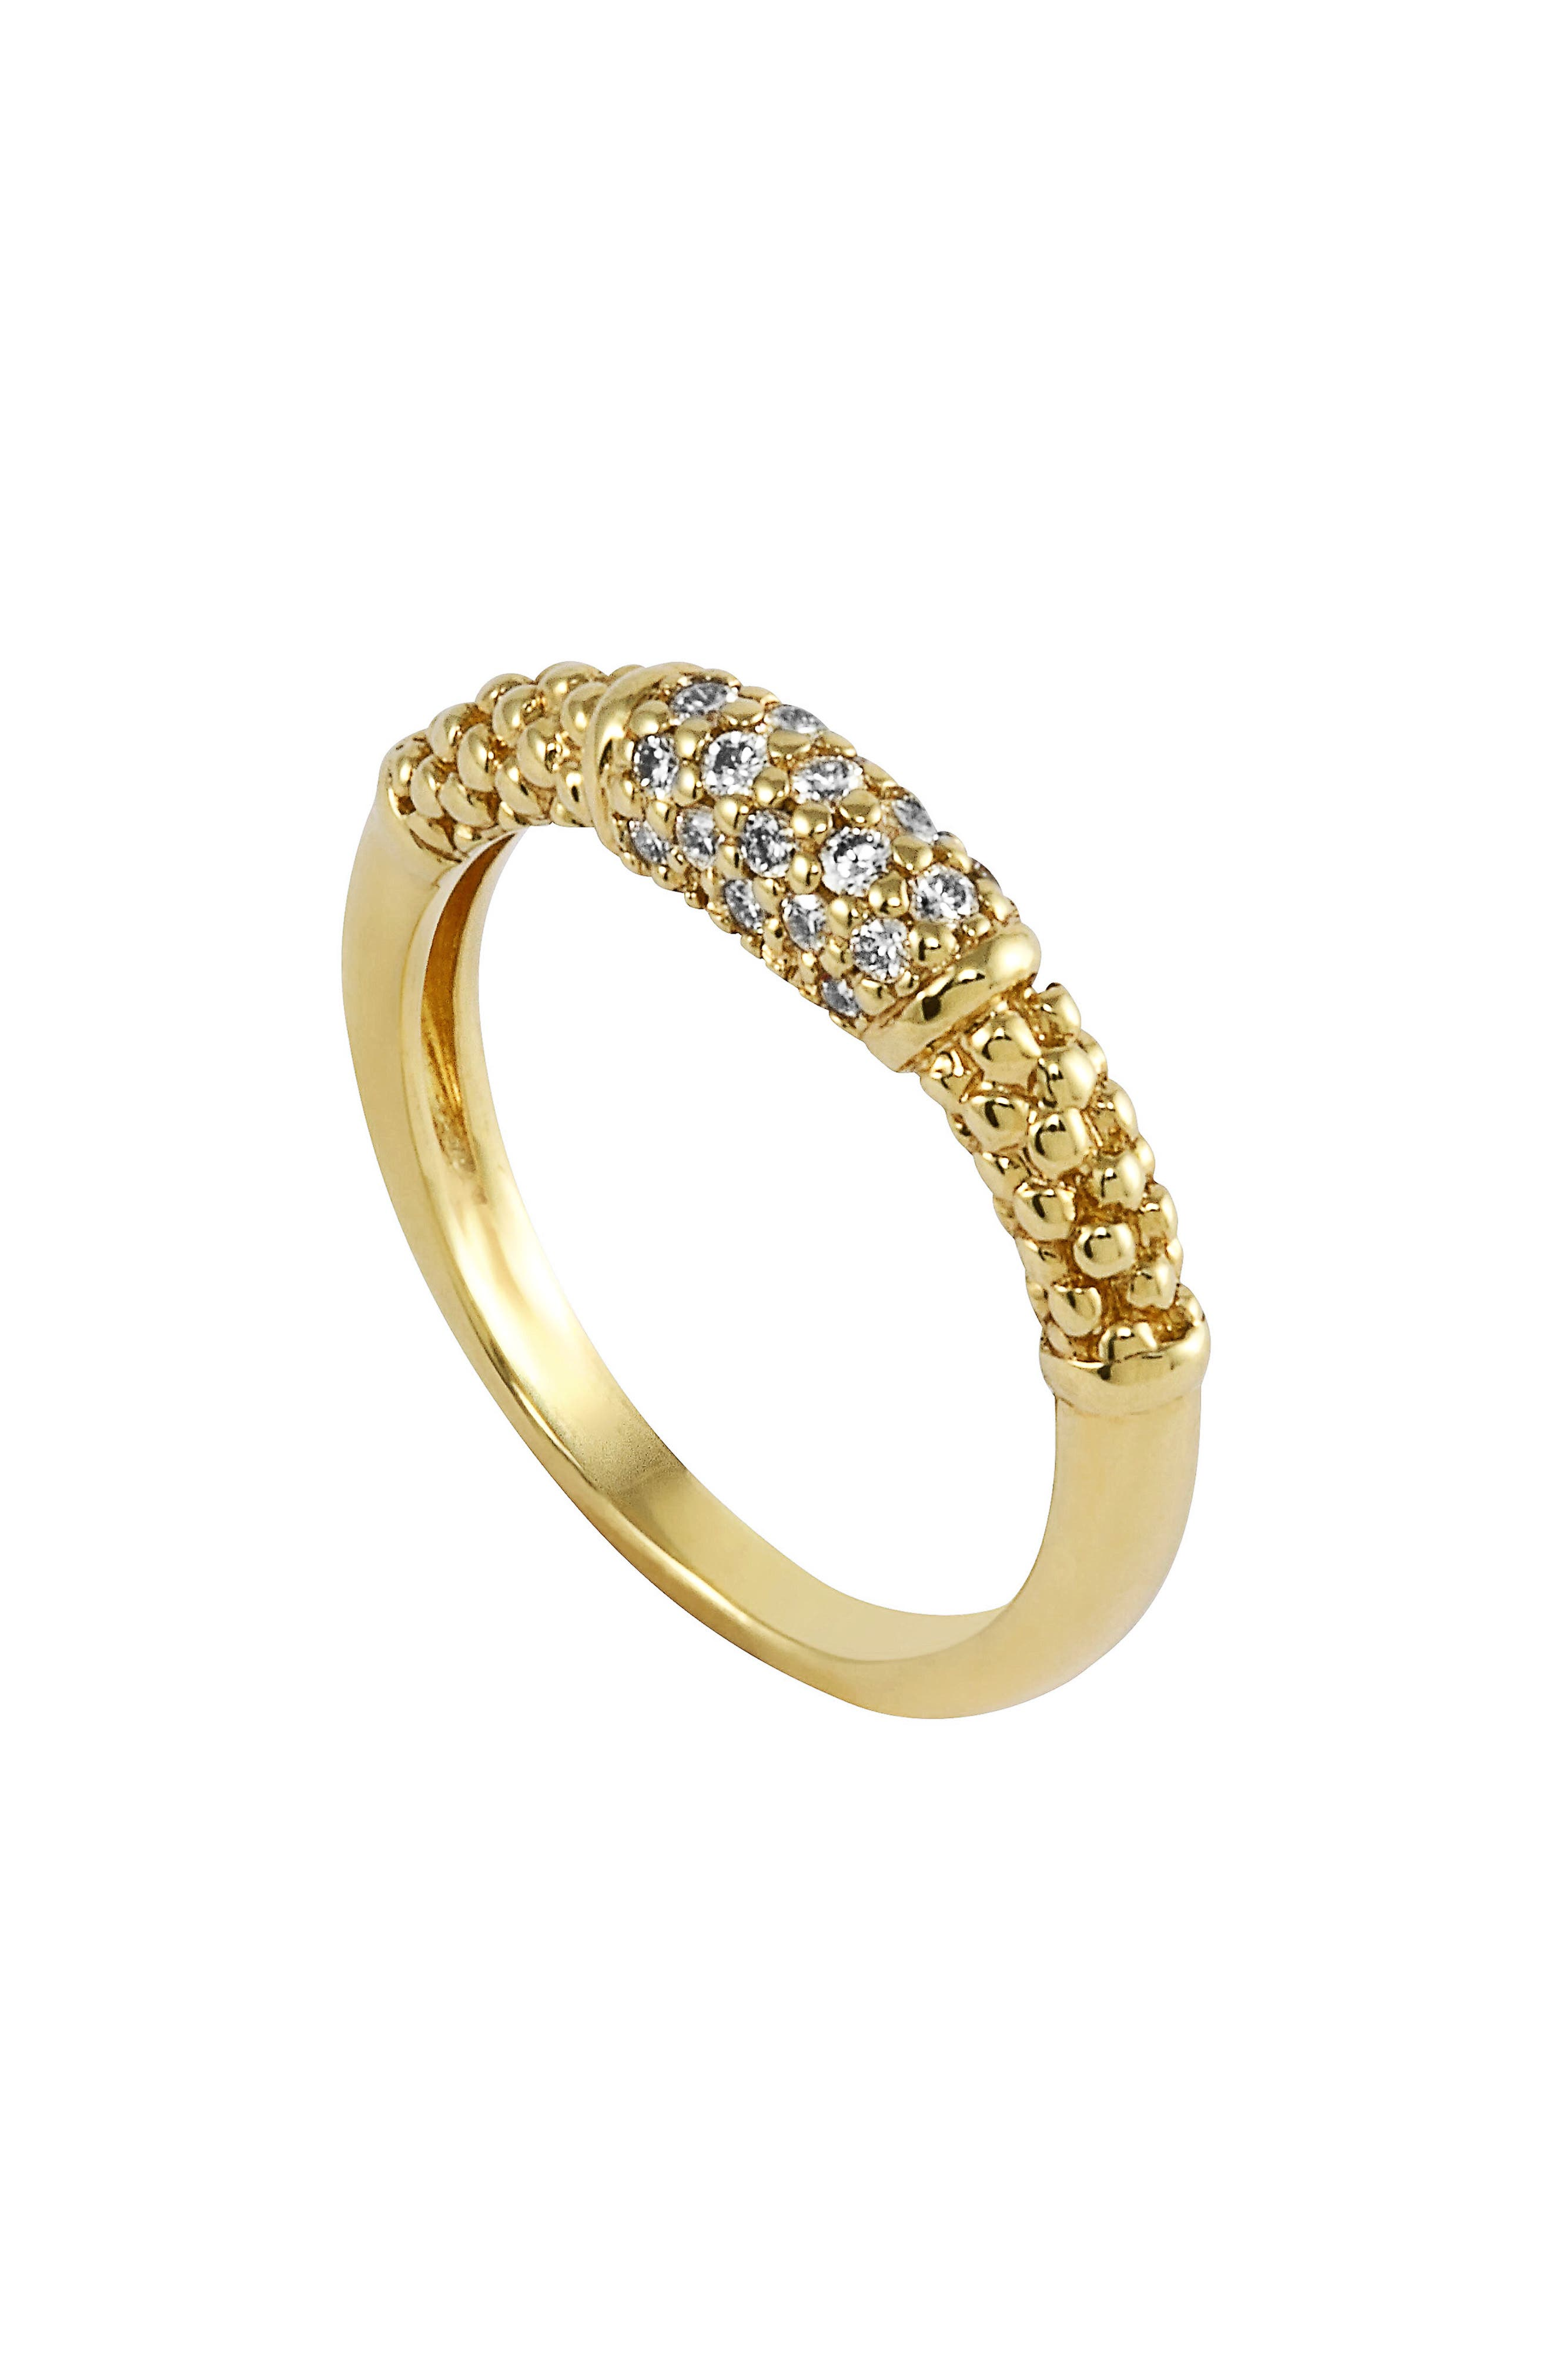 Caviar Diamond Ring,                             Main thumbnail 1, color,                             GOLD